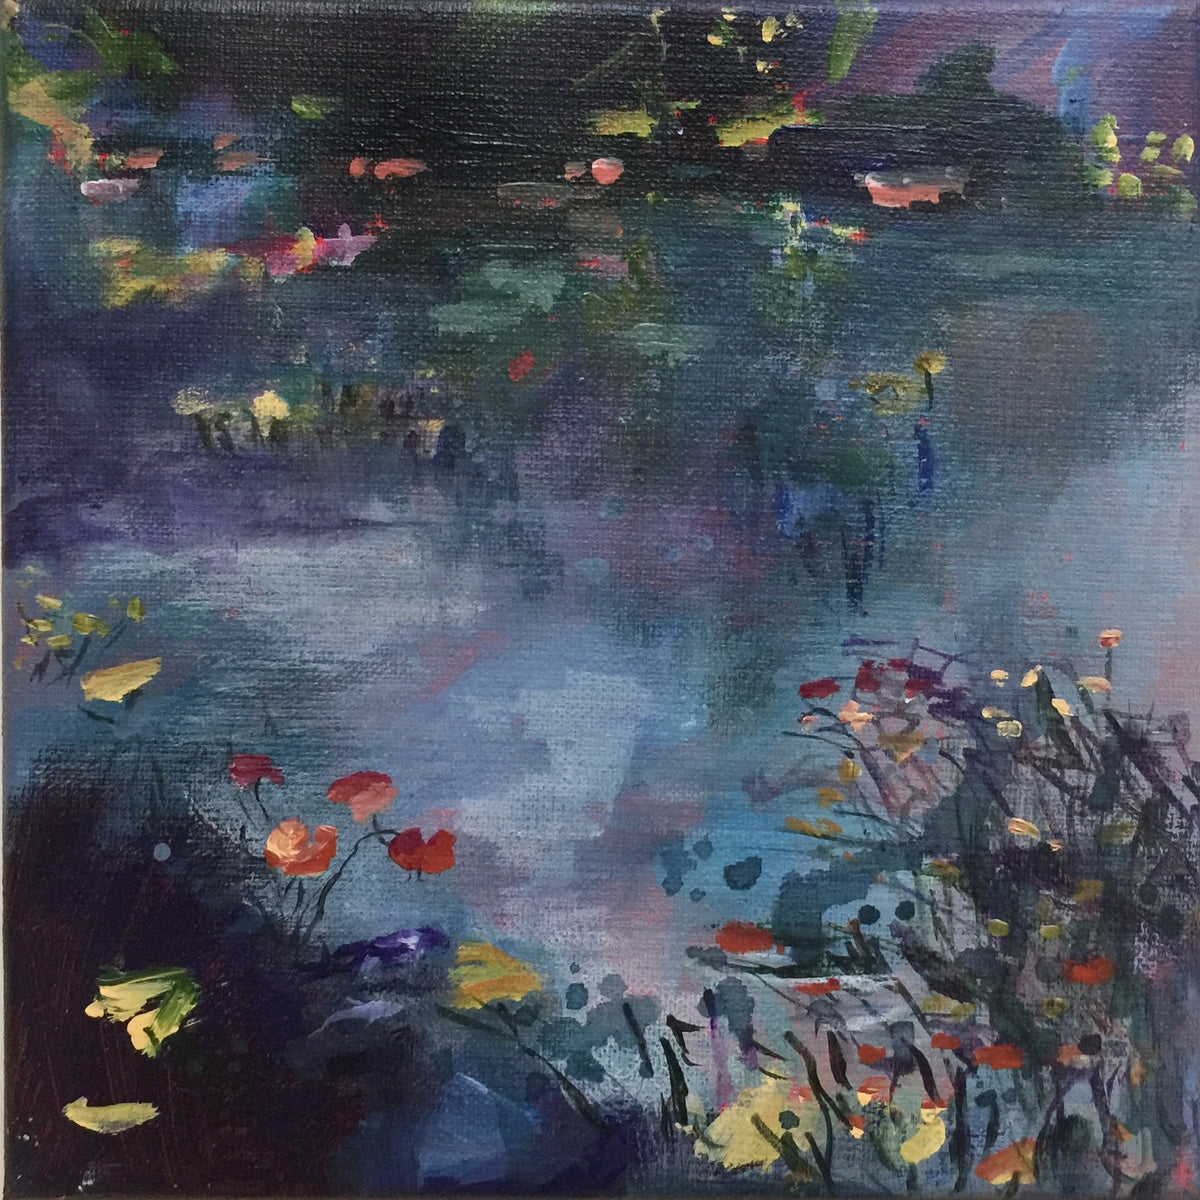 Floating-By-Lies-Goemans-waterscape-painting-20x20cm